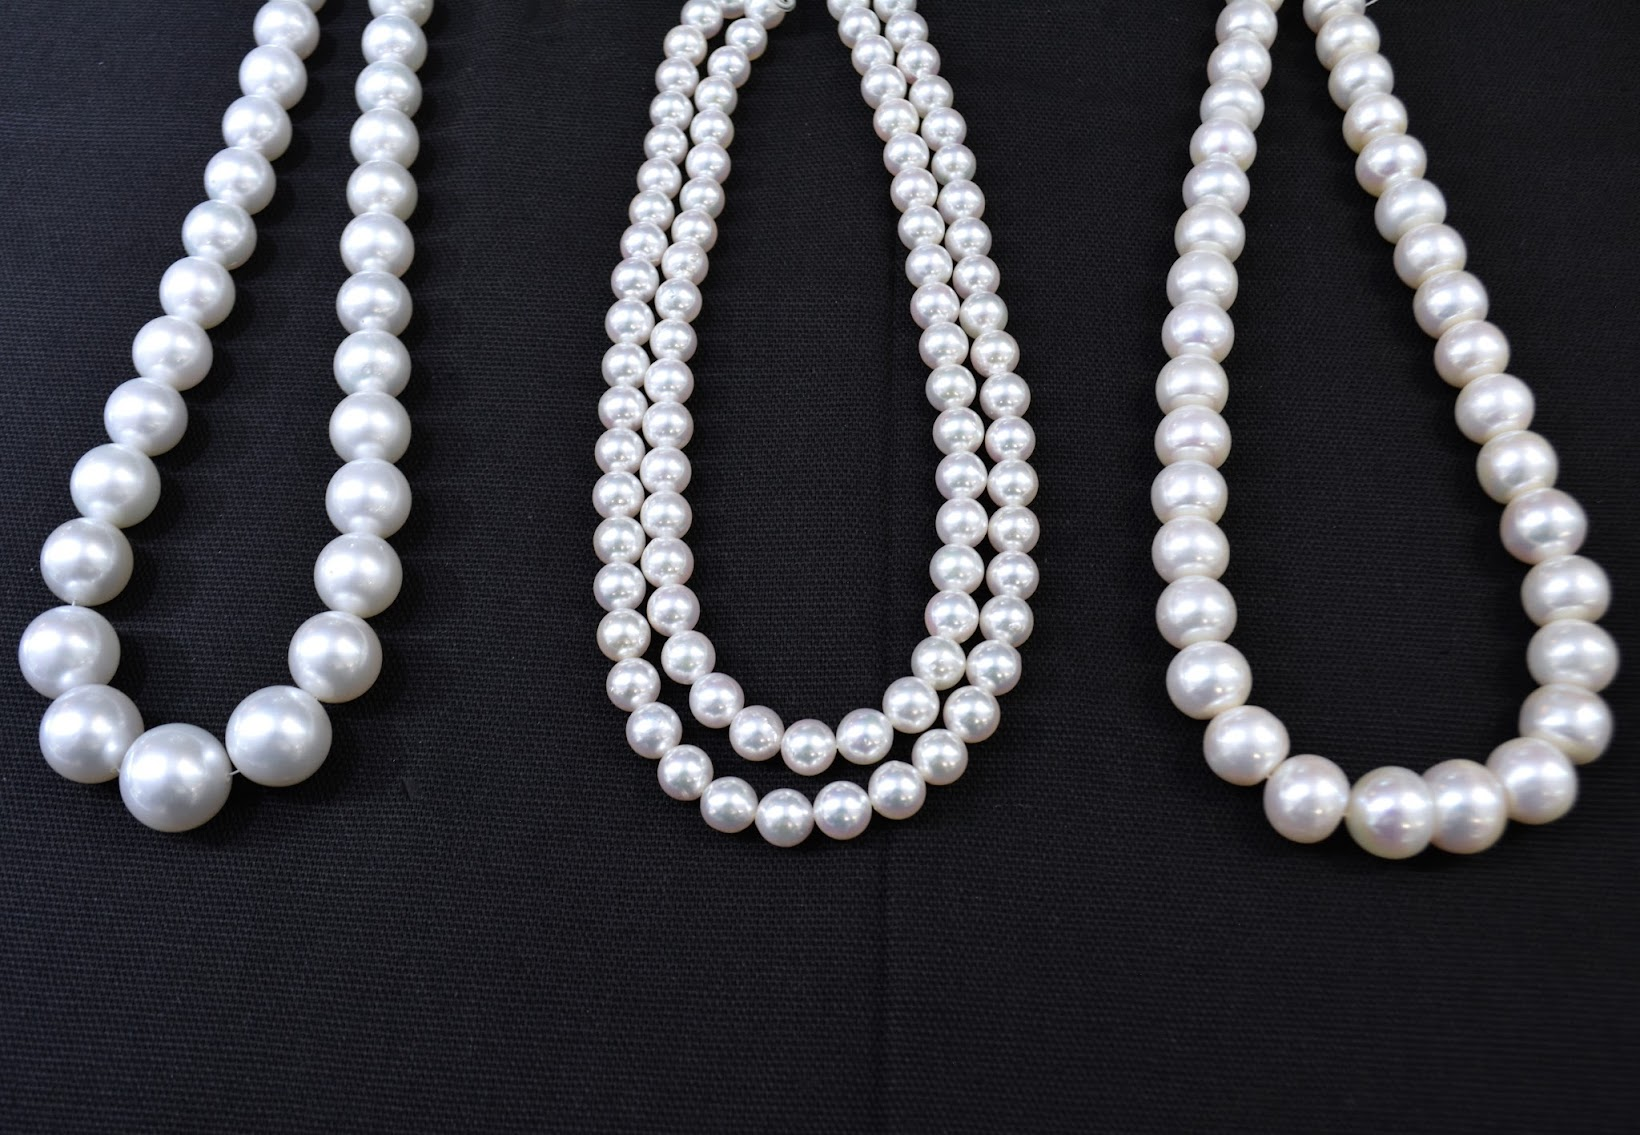 Three strands of pearls from Chicago jewelry store Golden Crown Jewelers